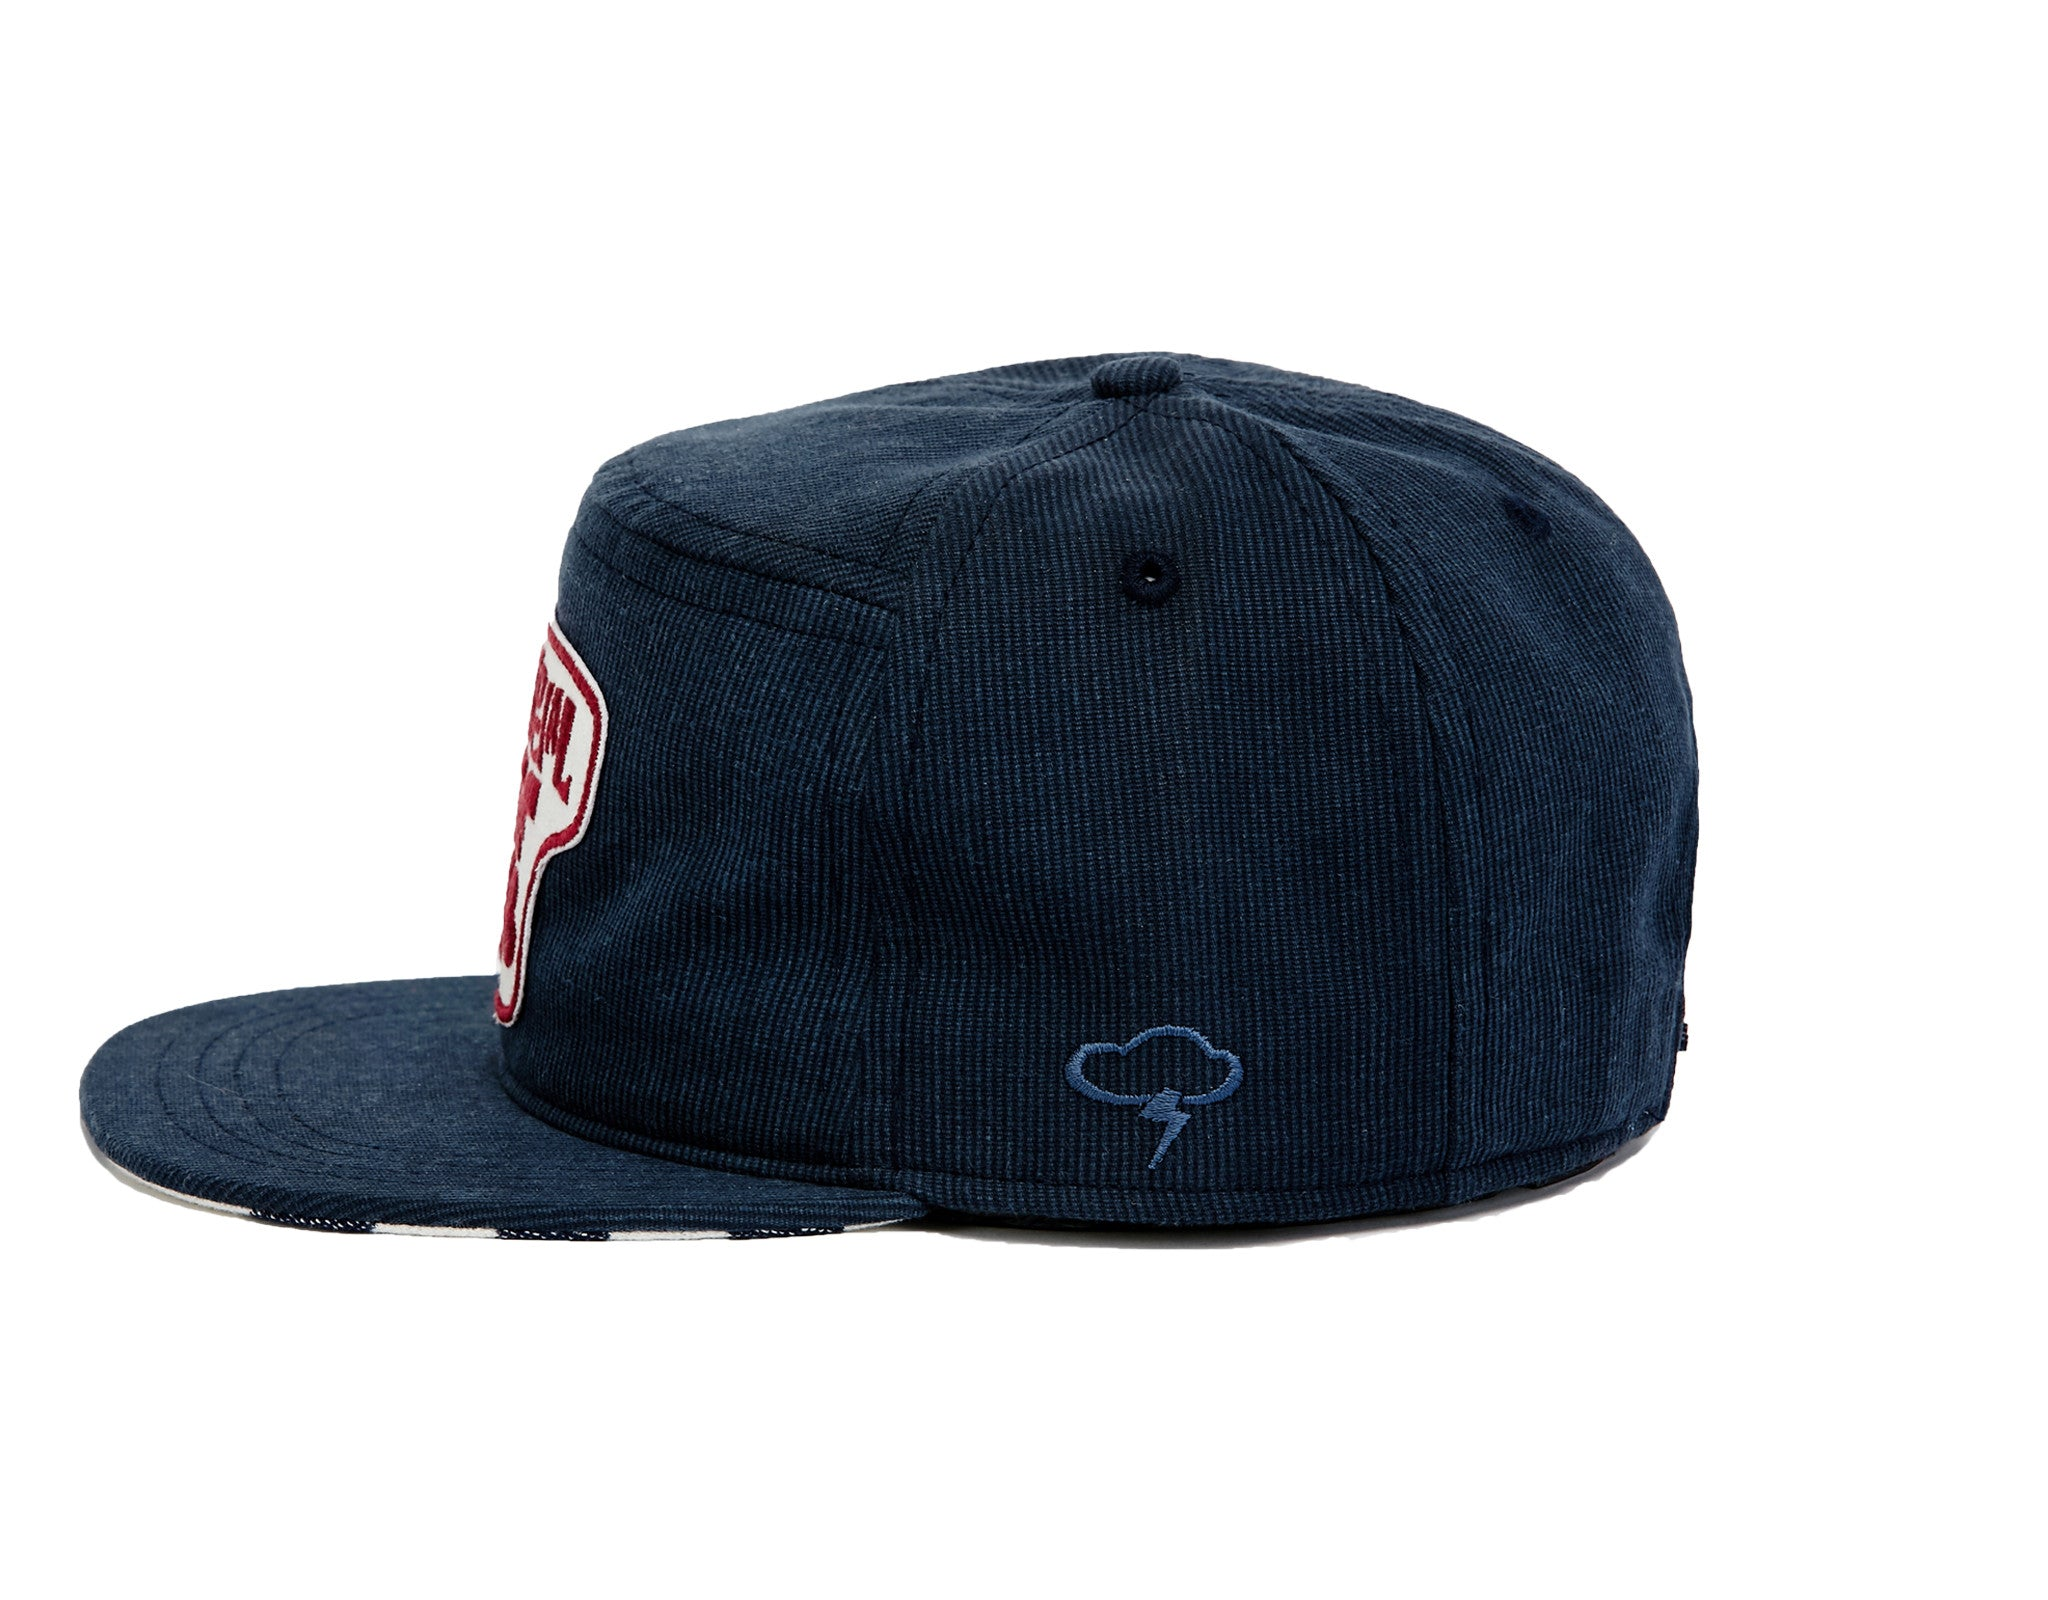 ANTI-SOCIAL SURF CLUB Snapback - Navy